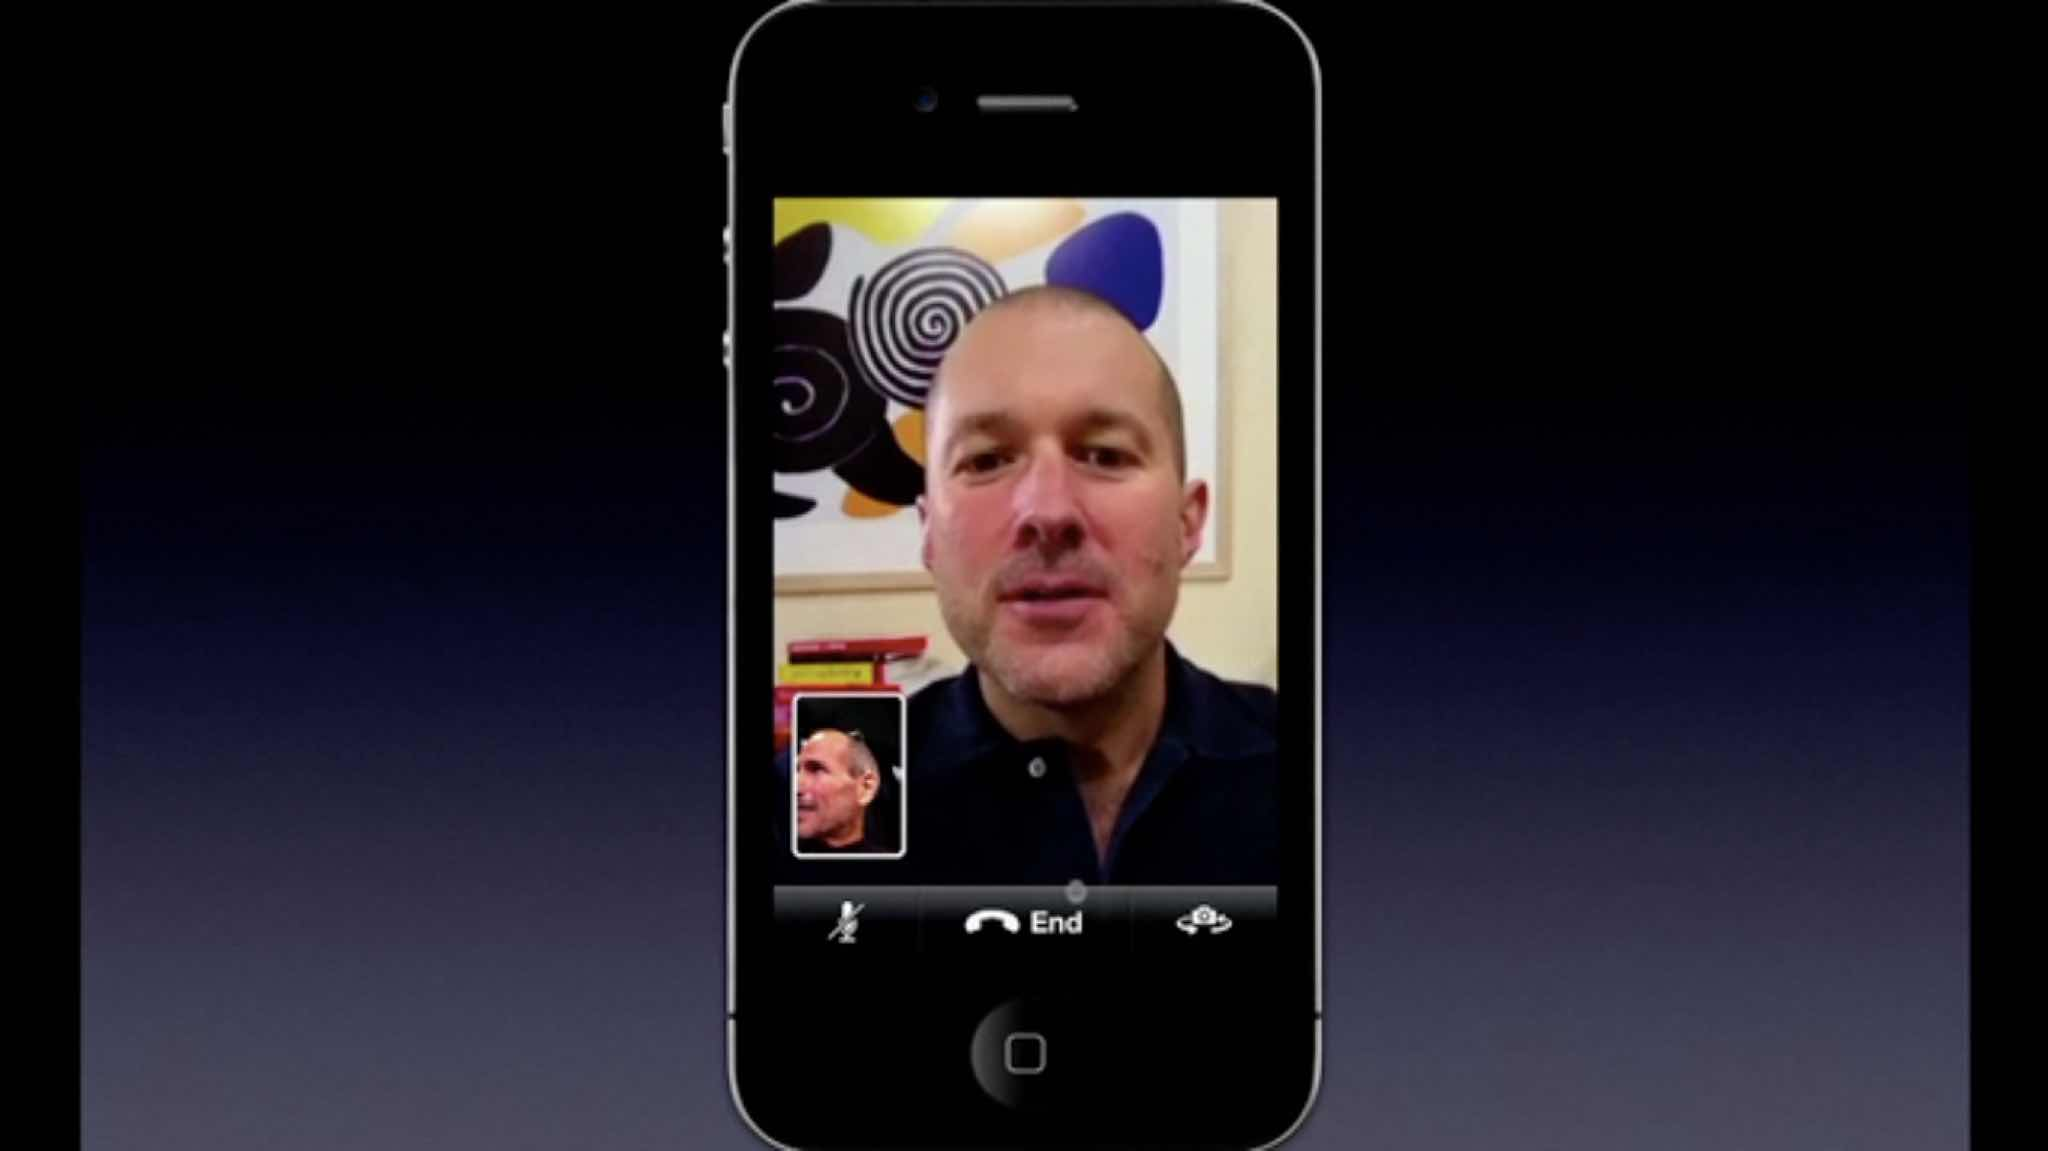 Steve Jobs and Jony Ive introduce FaceTime.